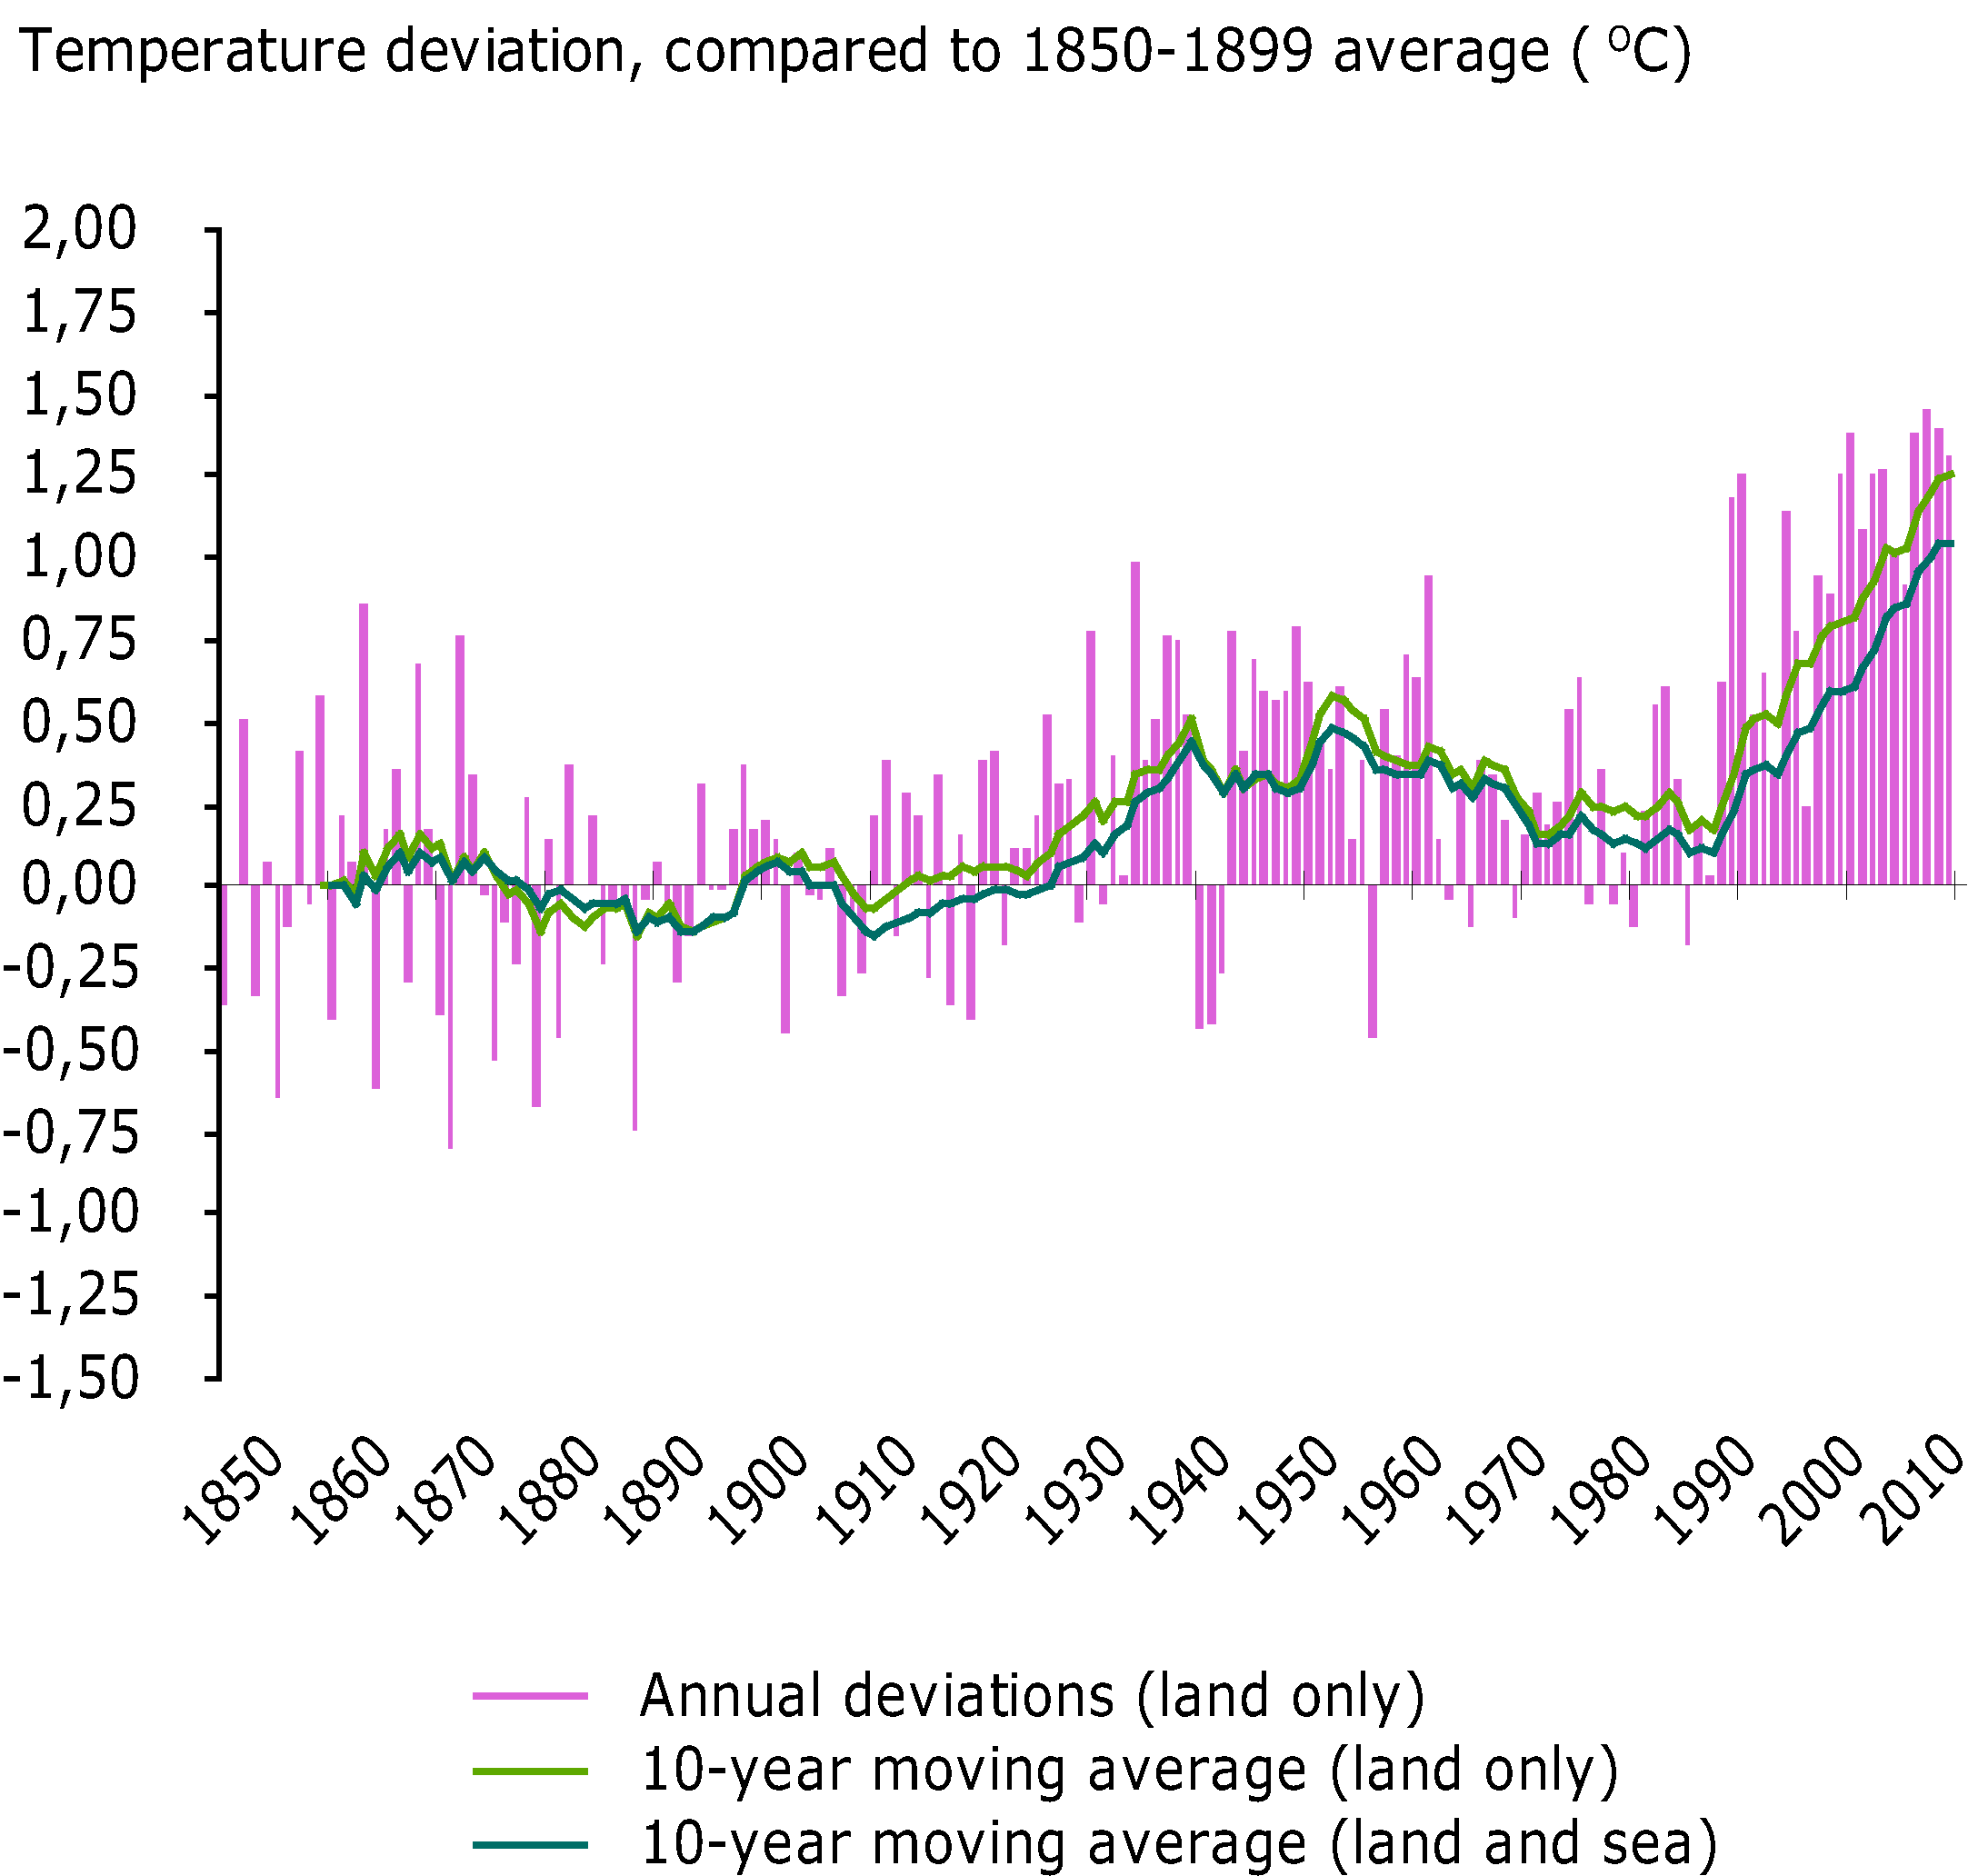 Observed European annual average temperature deviations, 1850-2009, relative to the 1850-1899 average (in ºC).